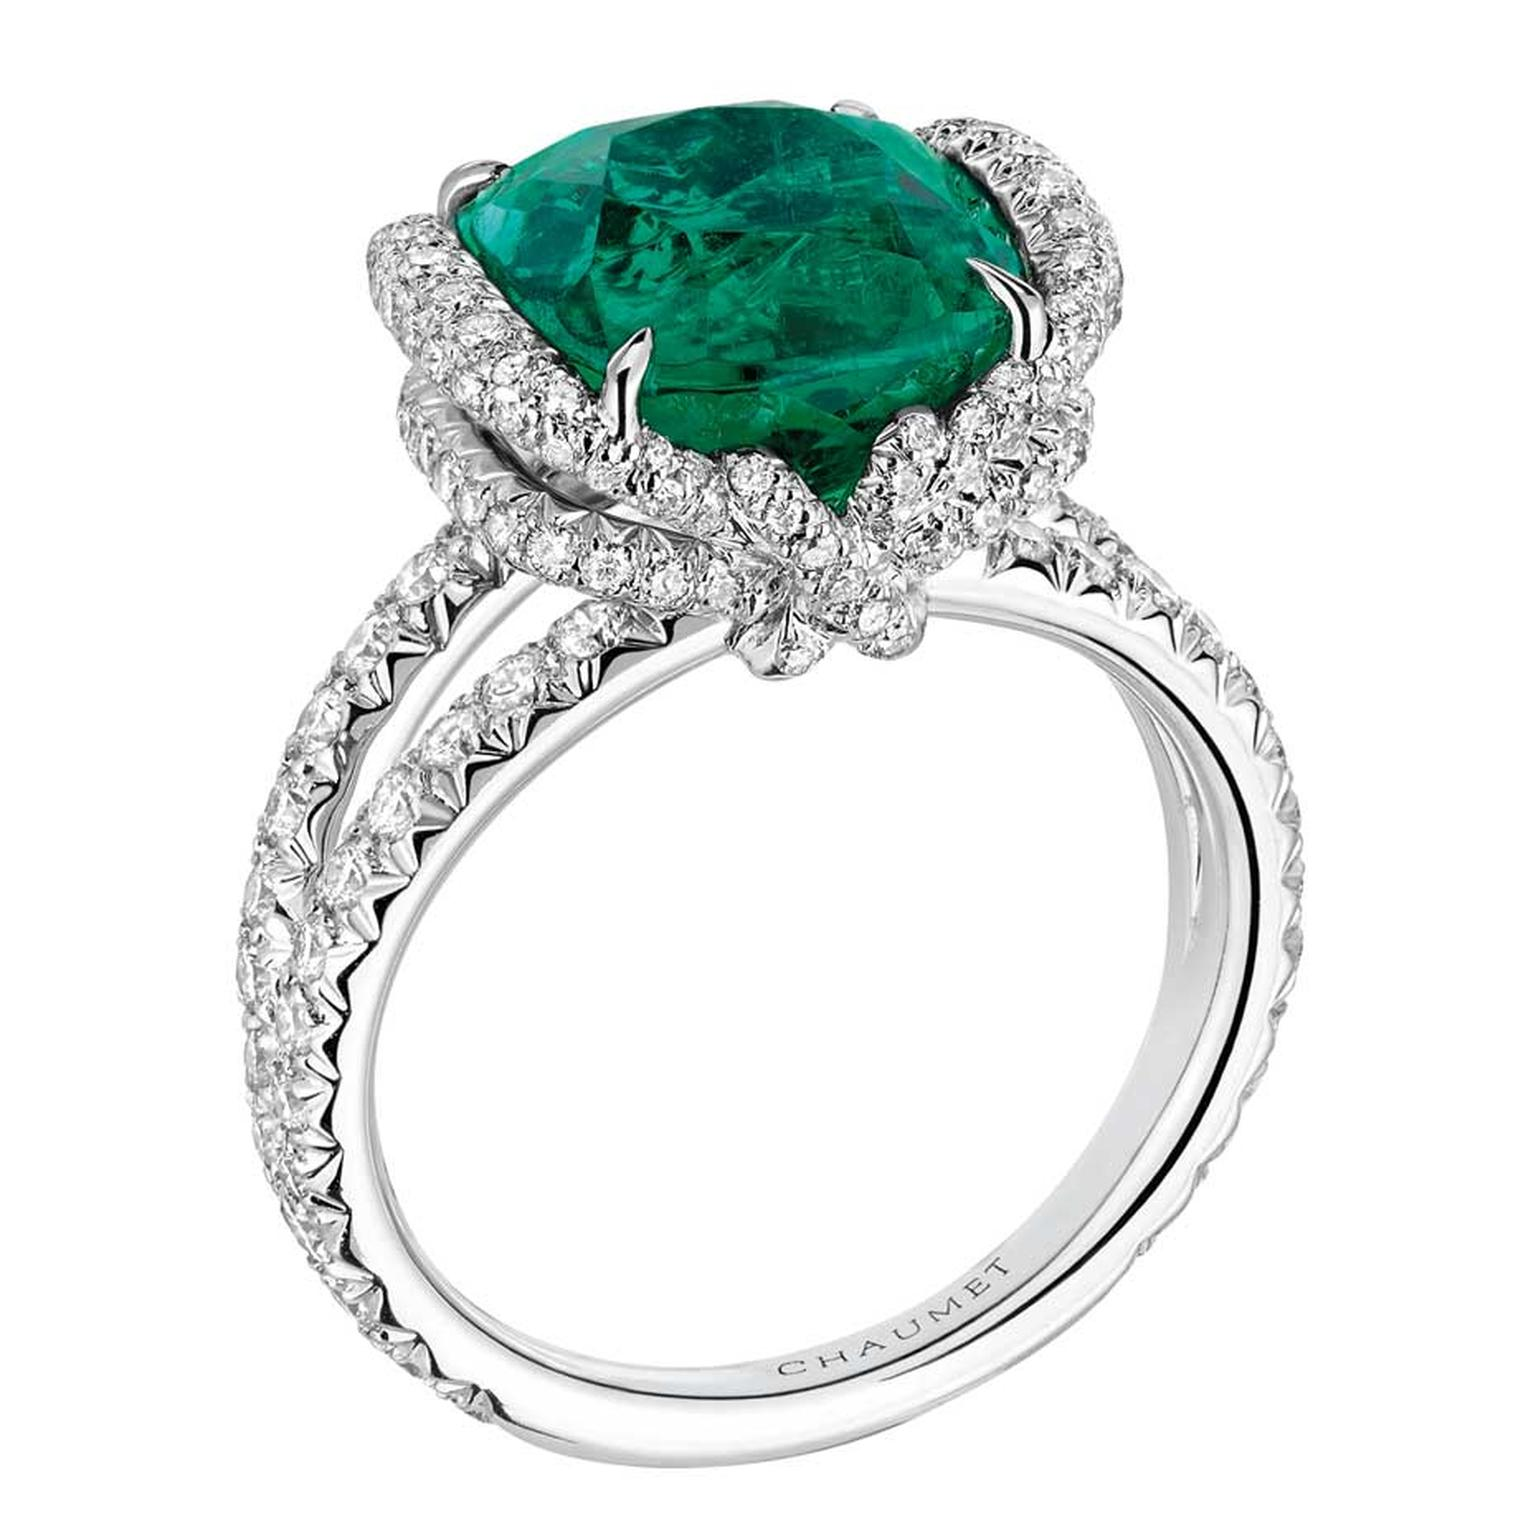 Chaumet Liens high jewellery ring in white gold featuring 147 brilliant-cut diamonds and a 6.42ct cushion-cut emerald